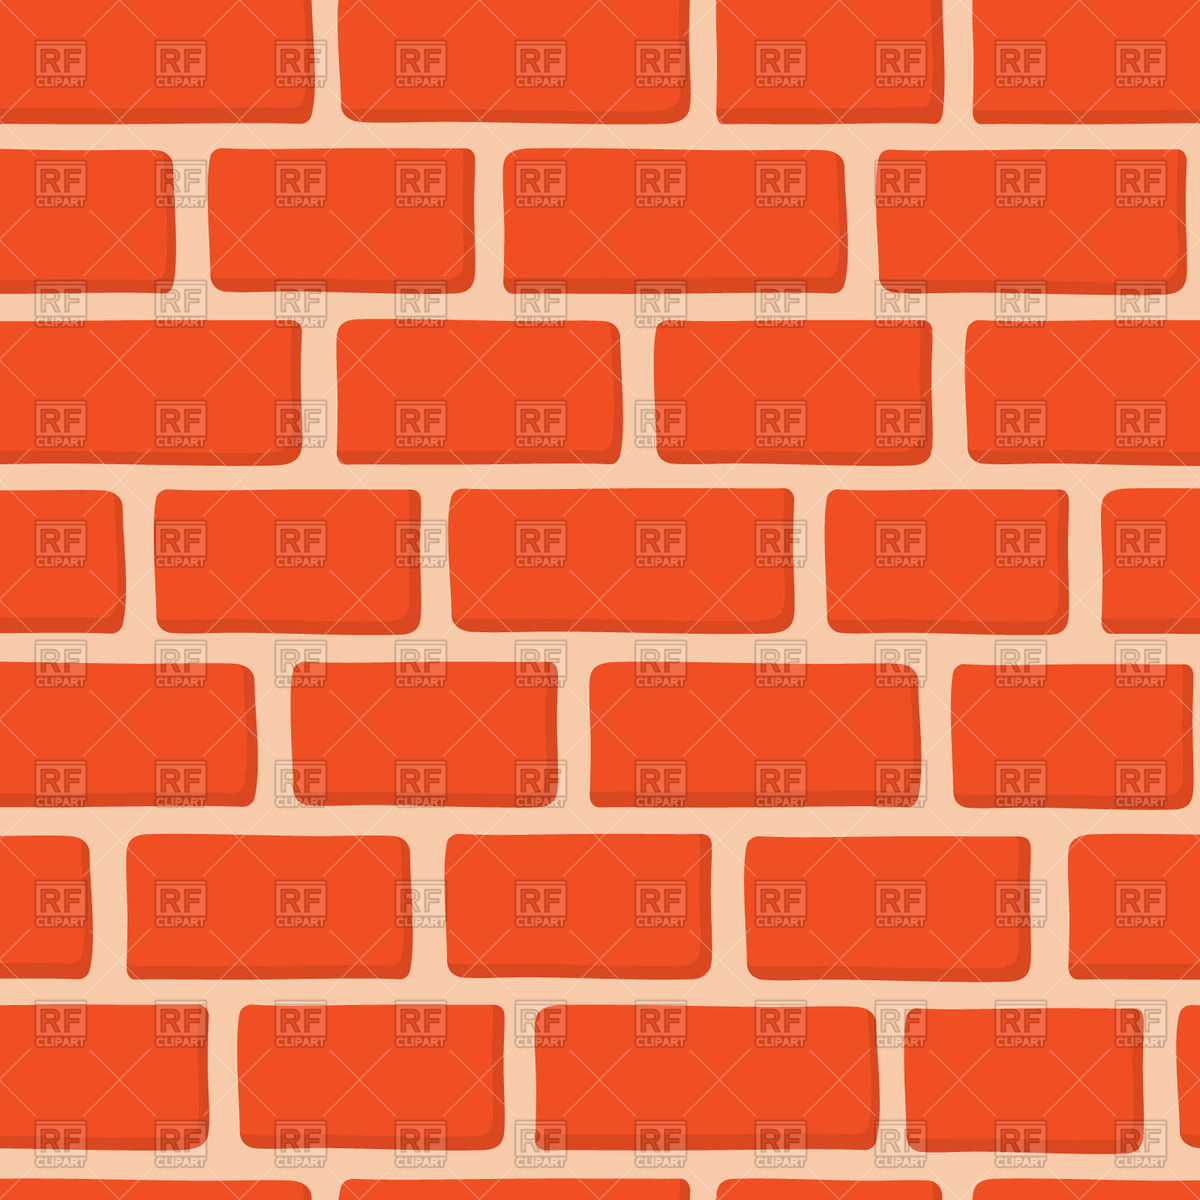 549 Brick Wall free clipart.